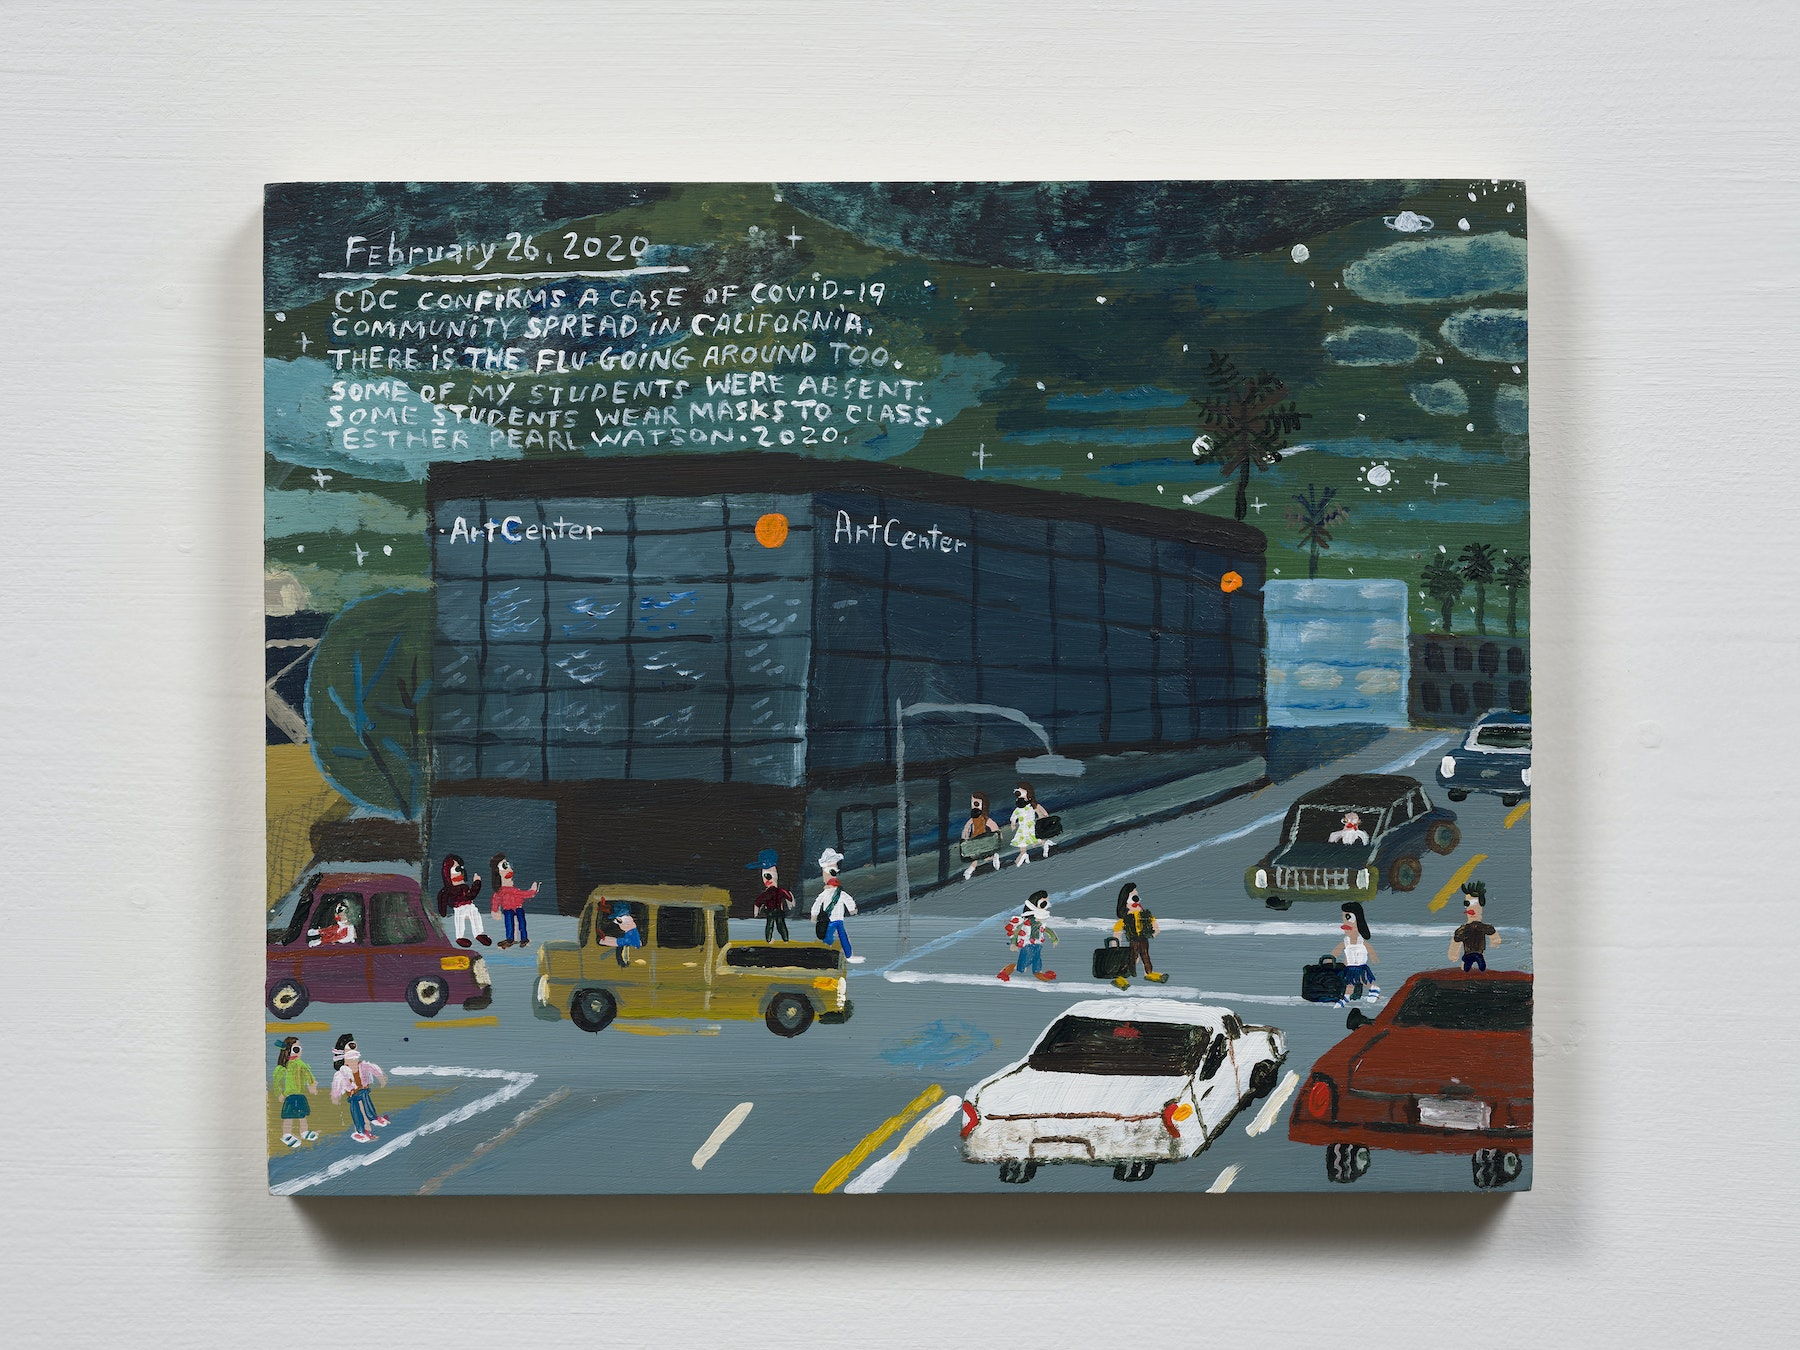 """Esther Pearl Watson """"February 26, CDC Confirms a Case,"""" 2020 Acrylic with pencil on panel 8 x 10"""" [HxW] (20.32 x 25.4 cm) Inventory #EPW234 Courtesy of the artist and Vielmetter Los Angeles Photo credit: Jeff Mclane"""